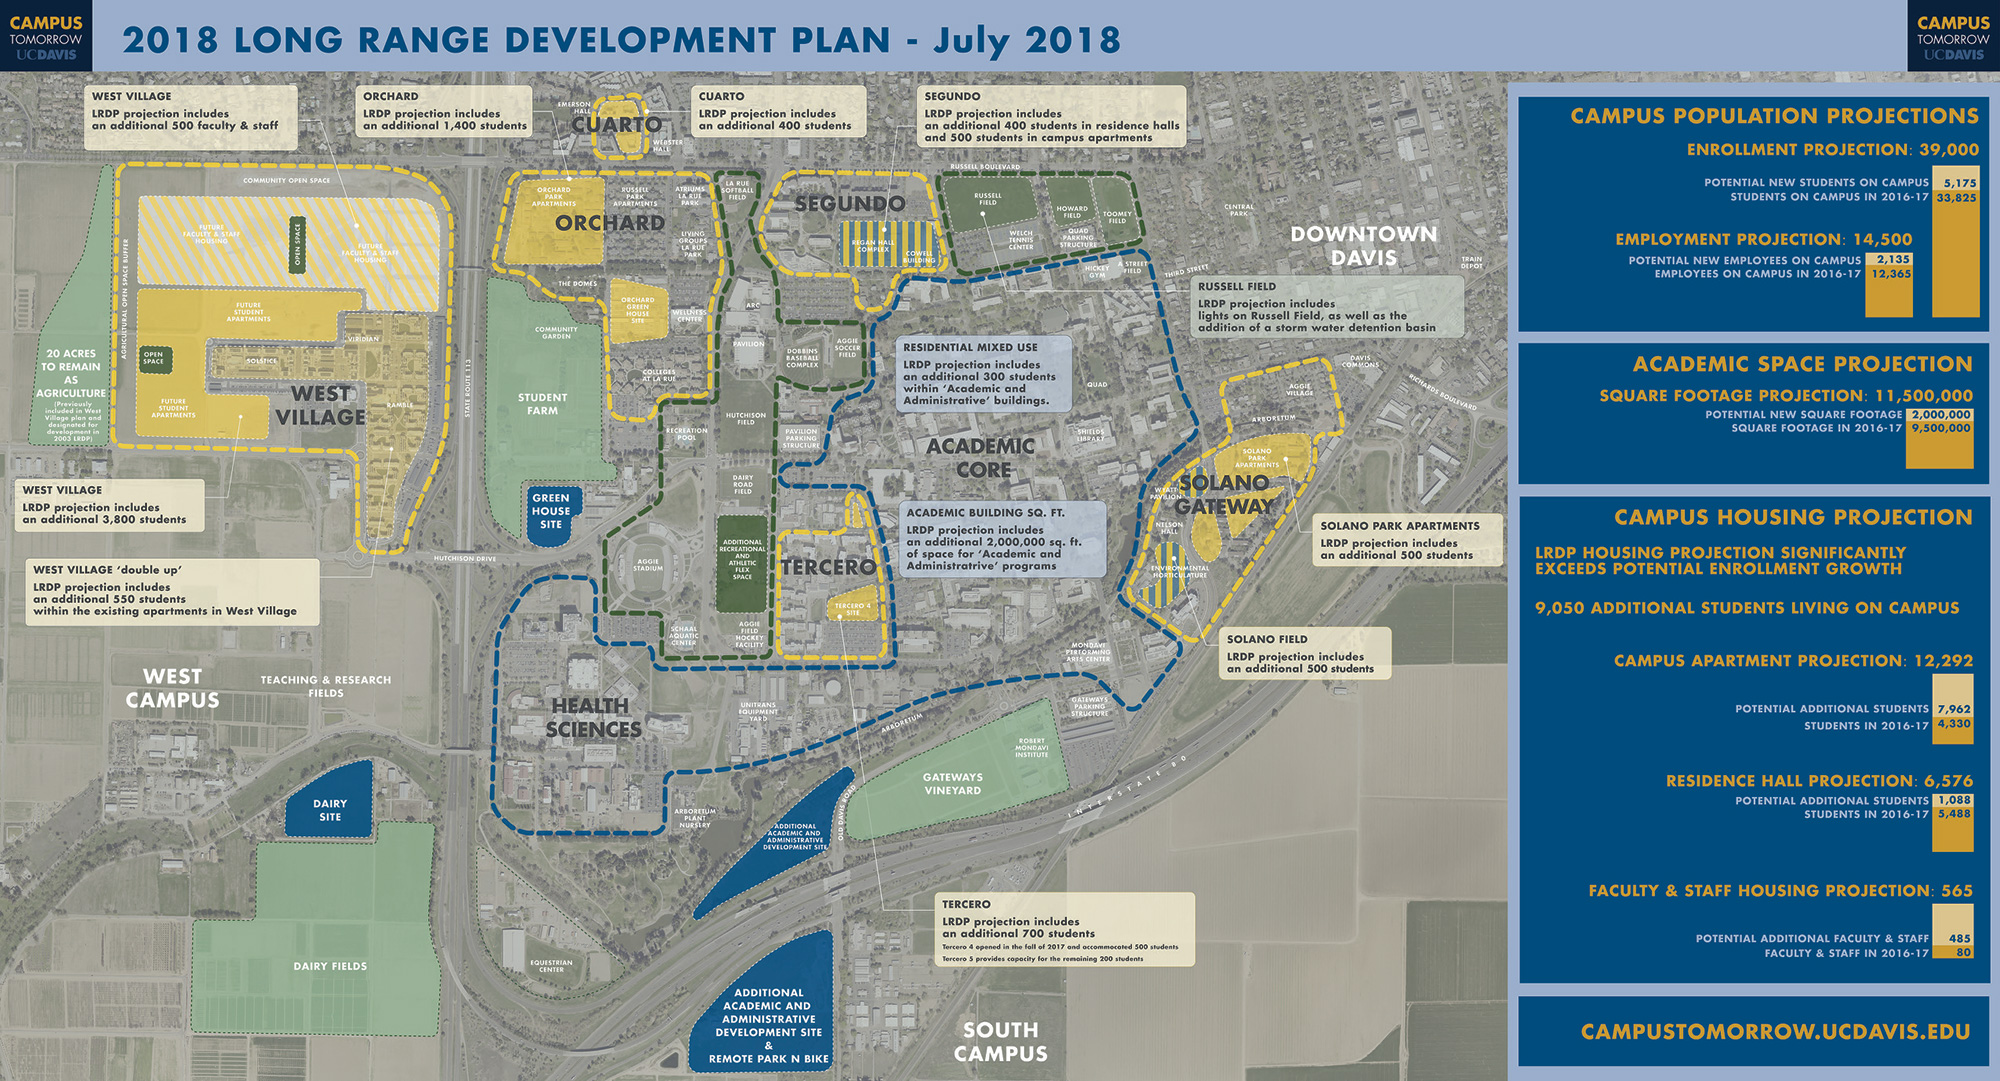 regents to consider uc davis long range development plan